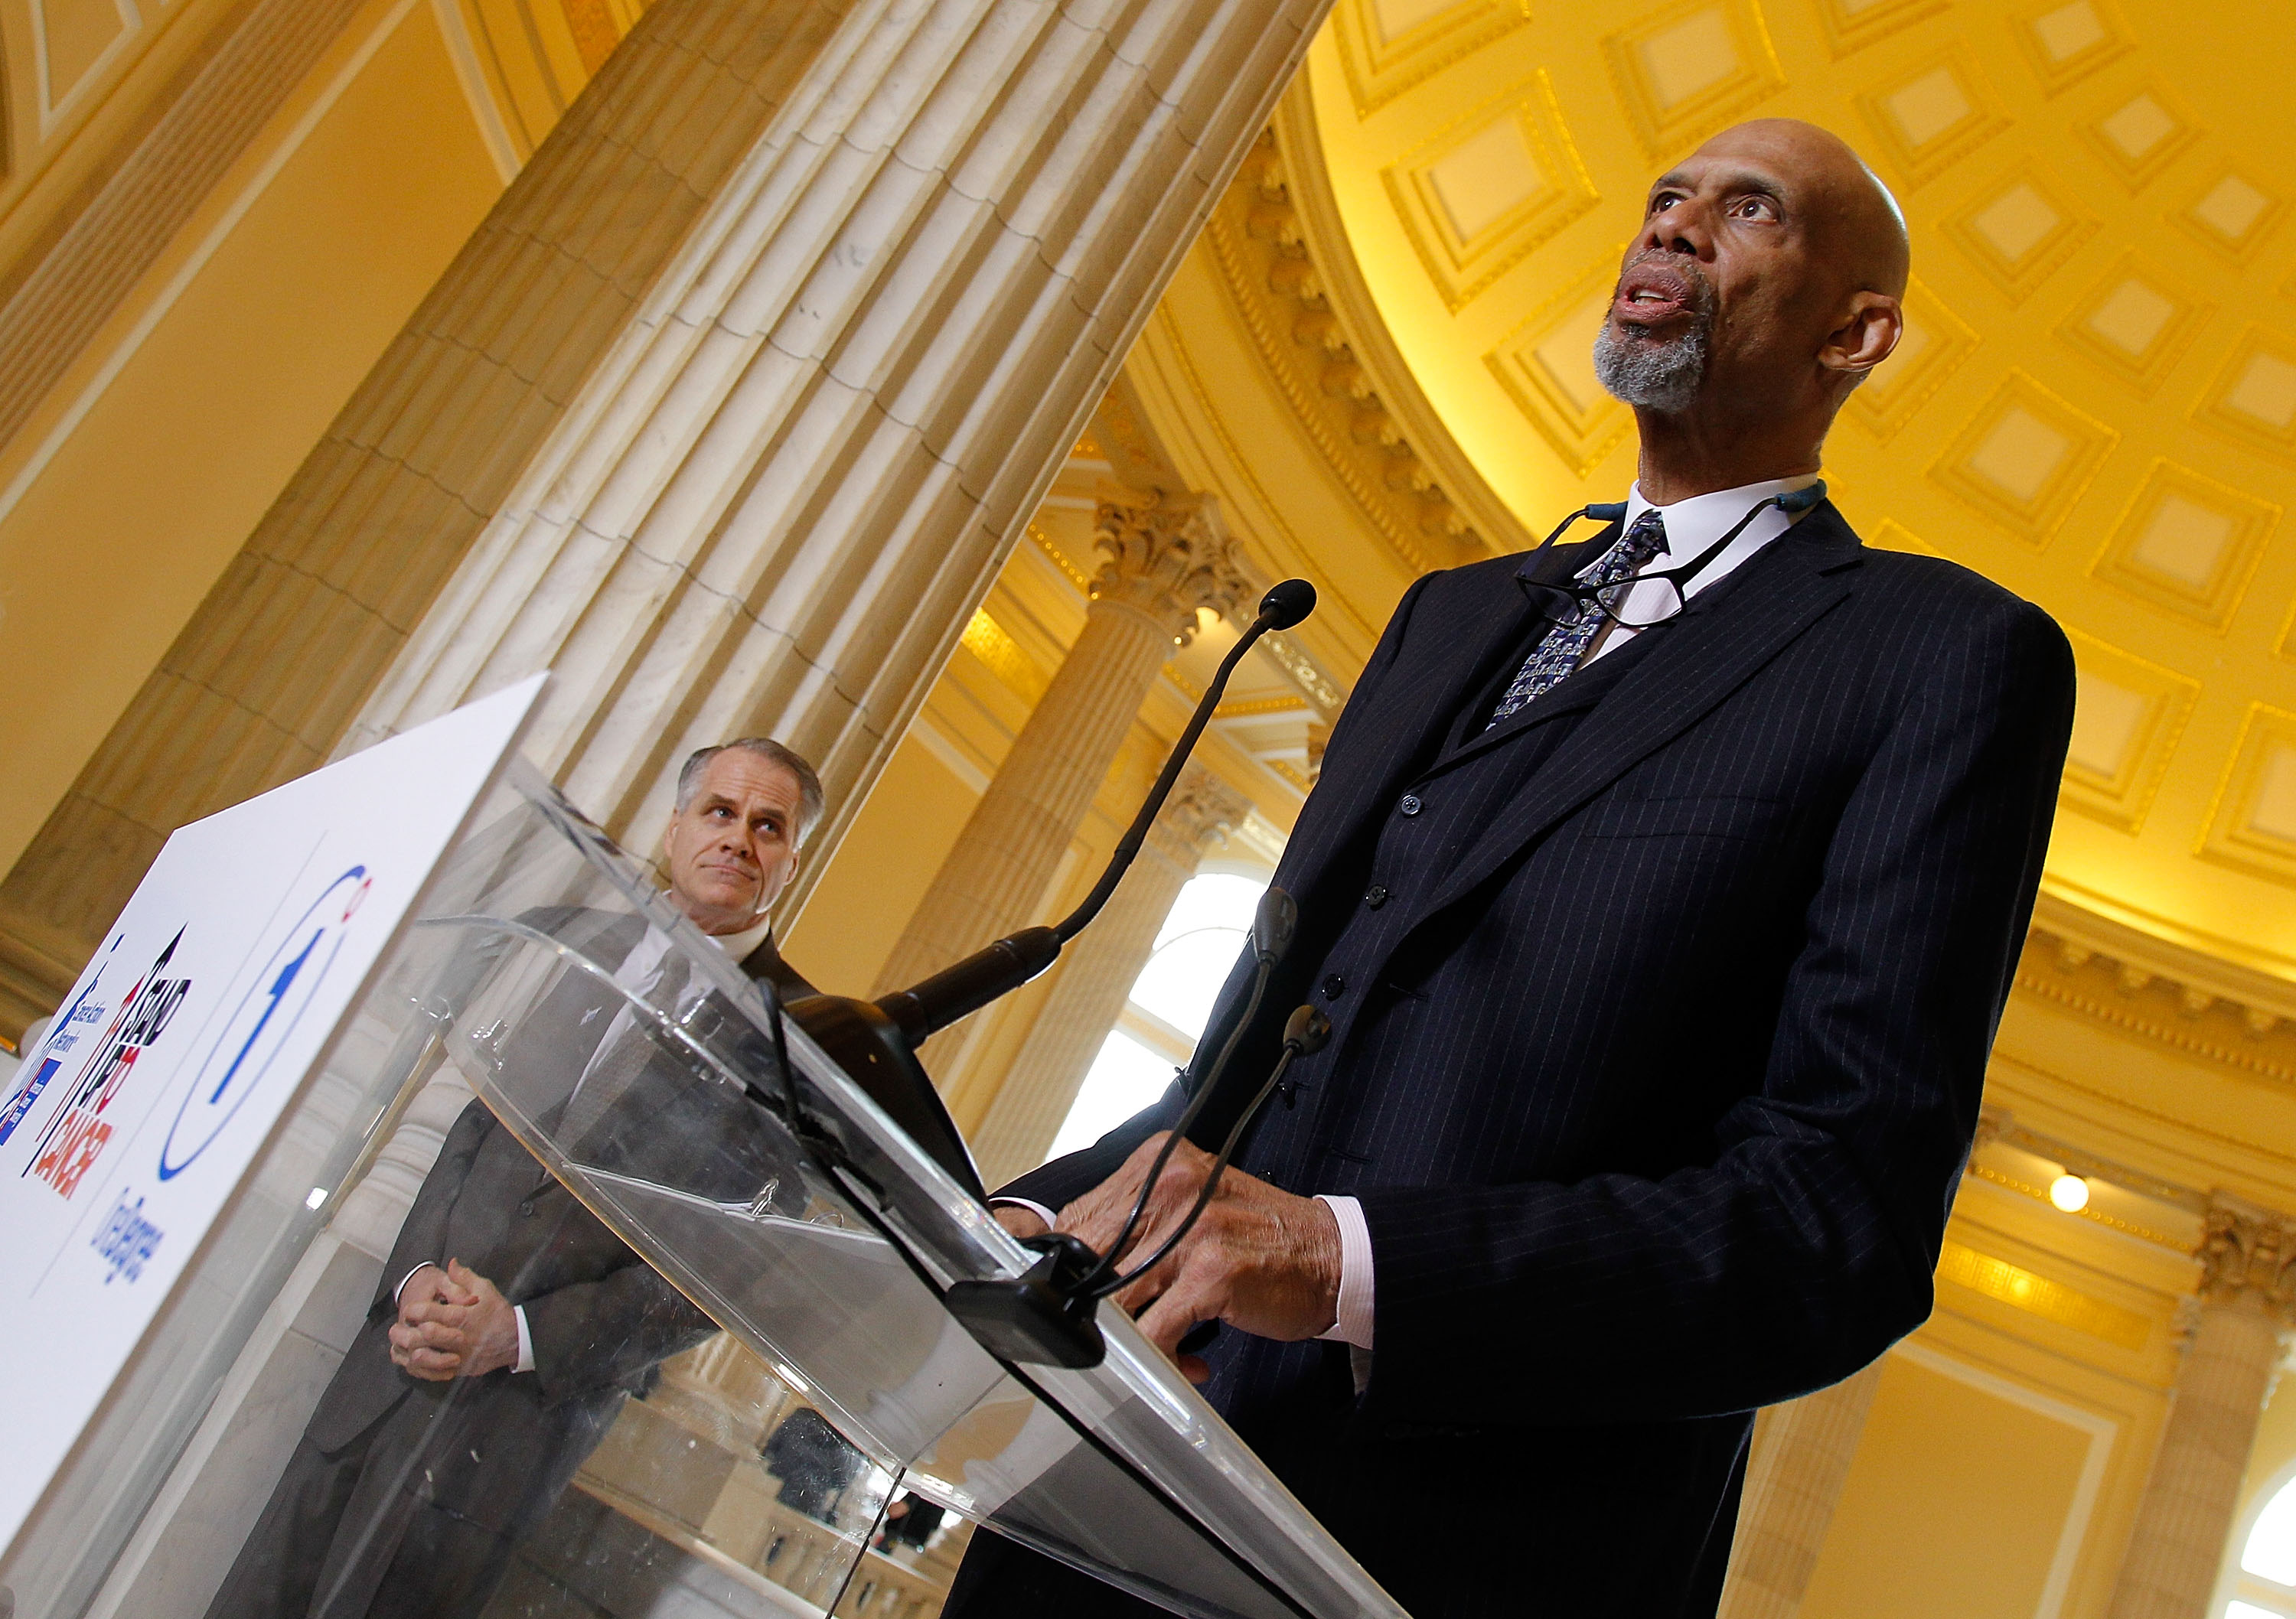 NBA hall-of famer Kareem Abdul-Jabbar speaks at The American Cancer Society Cancer Action Network and Stand Up To Cancer discussion on the importance of cancer research at Cannon House Office Building in Washington on March 17, 2015.